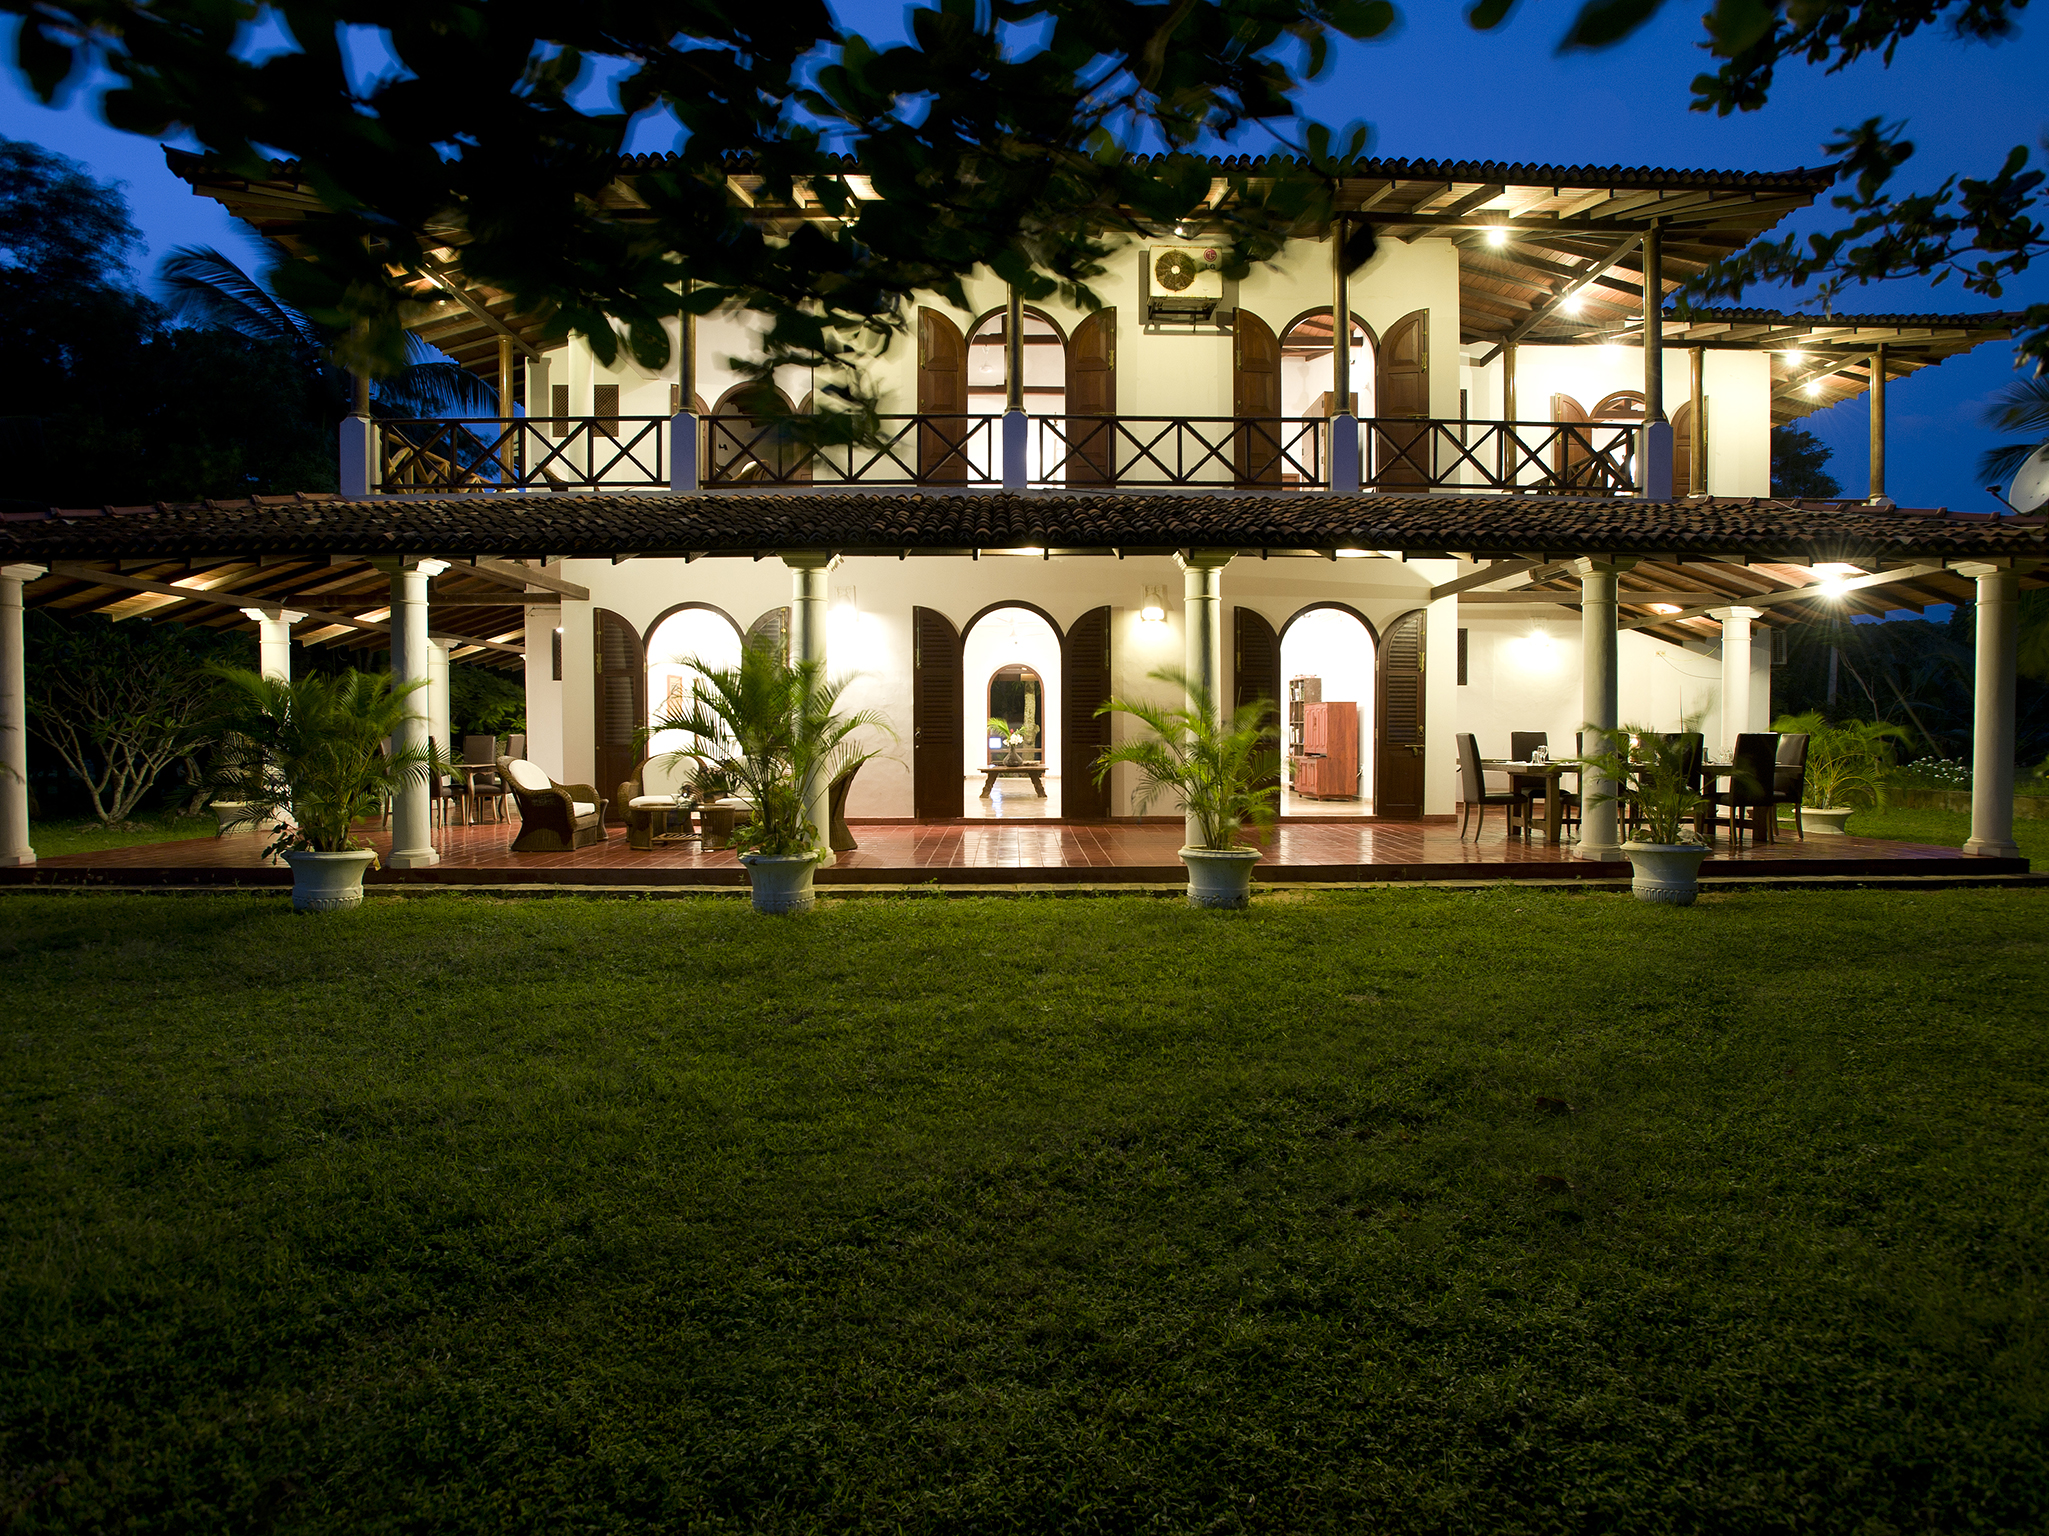 14-Oceans Edge-Tangalle - The villa at night.jpg